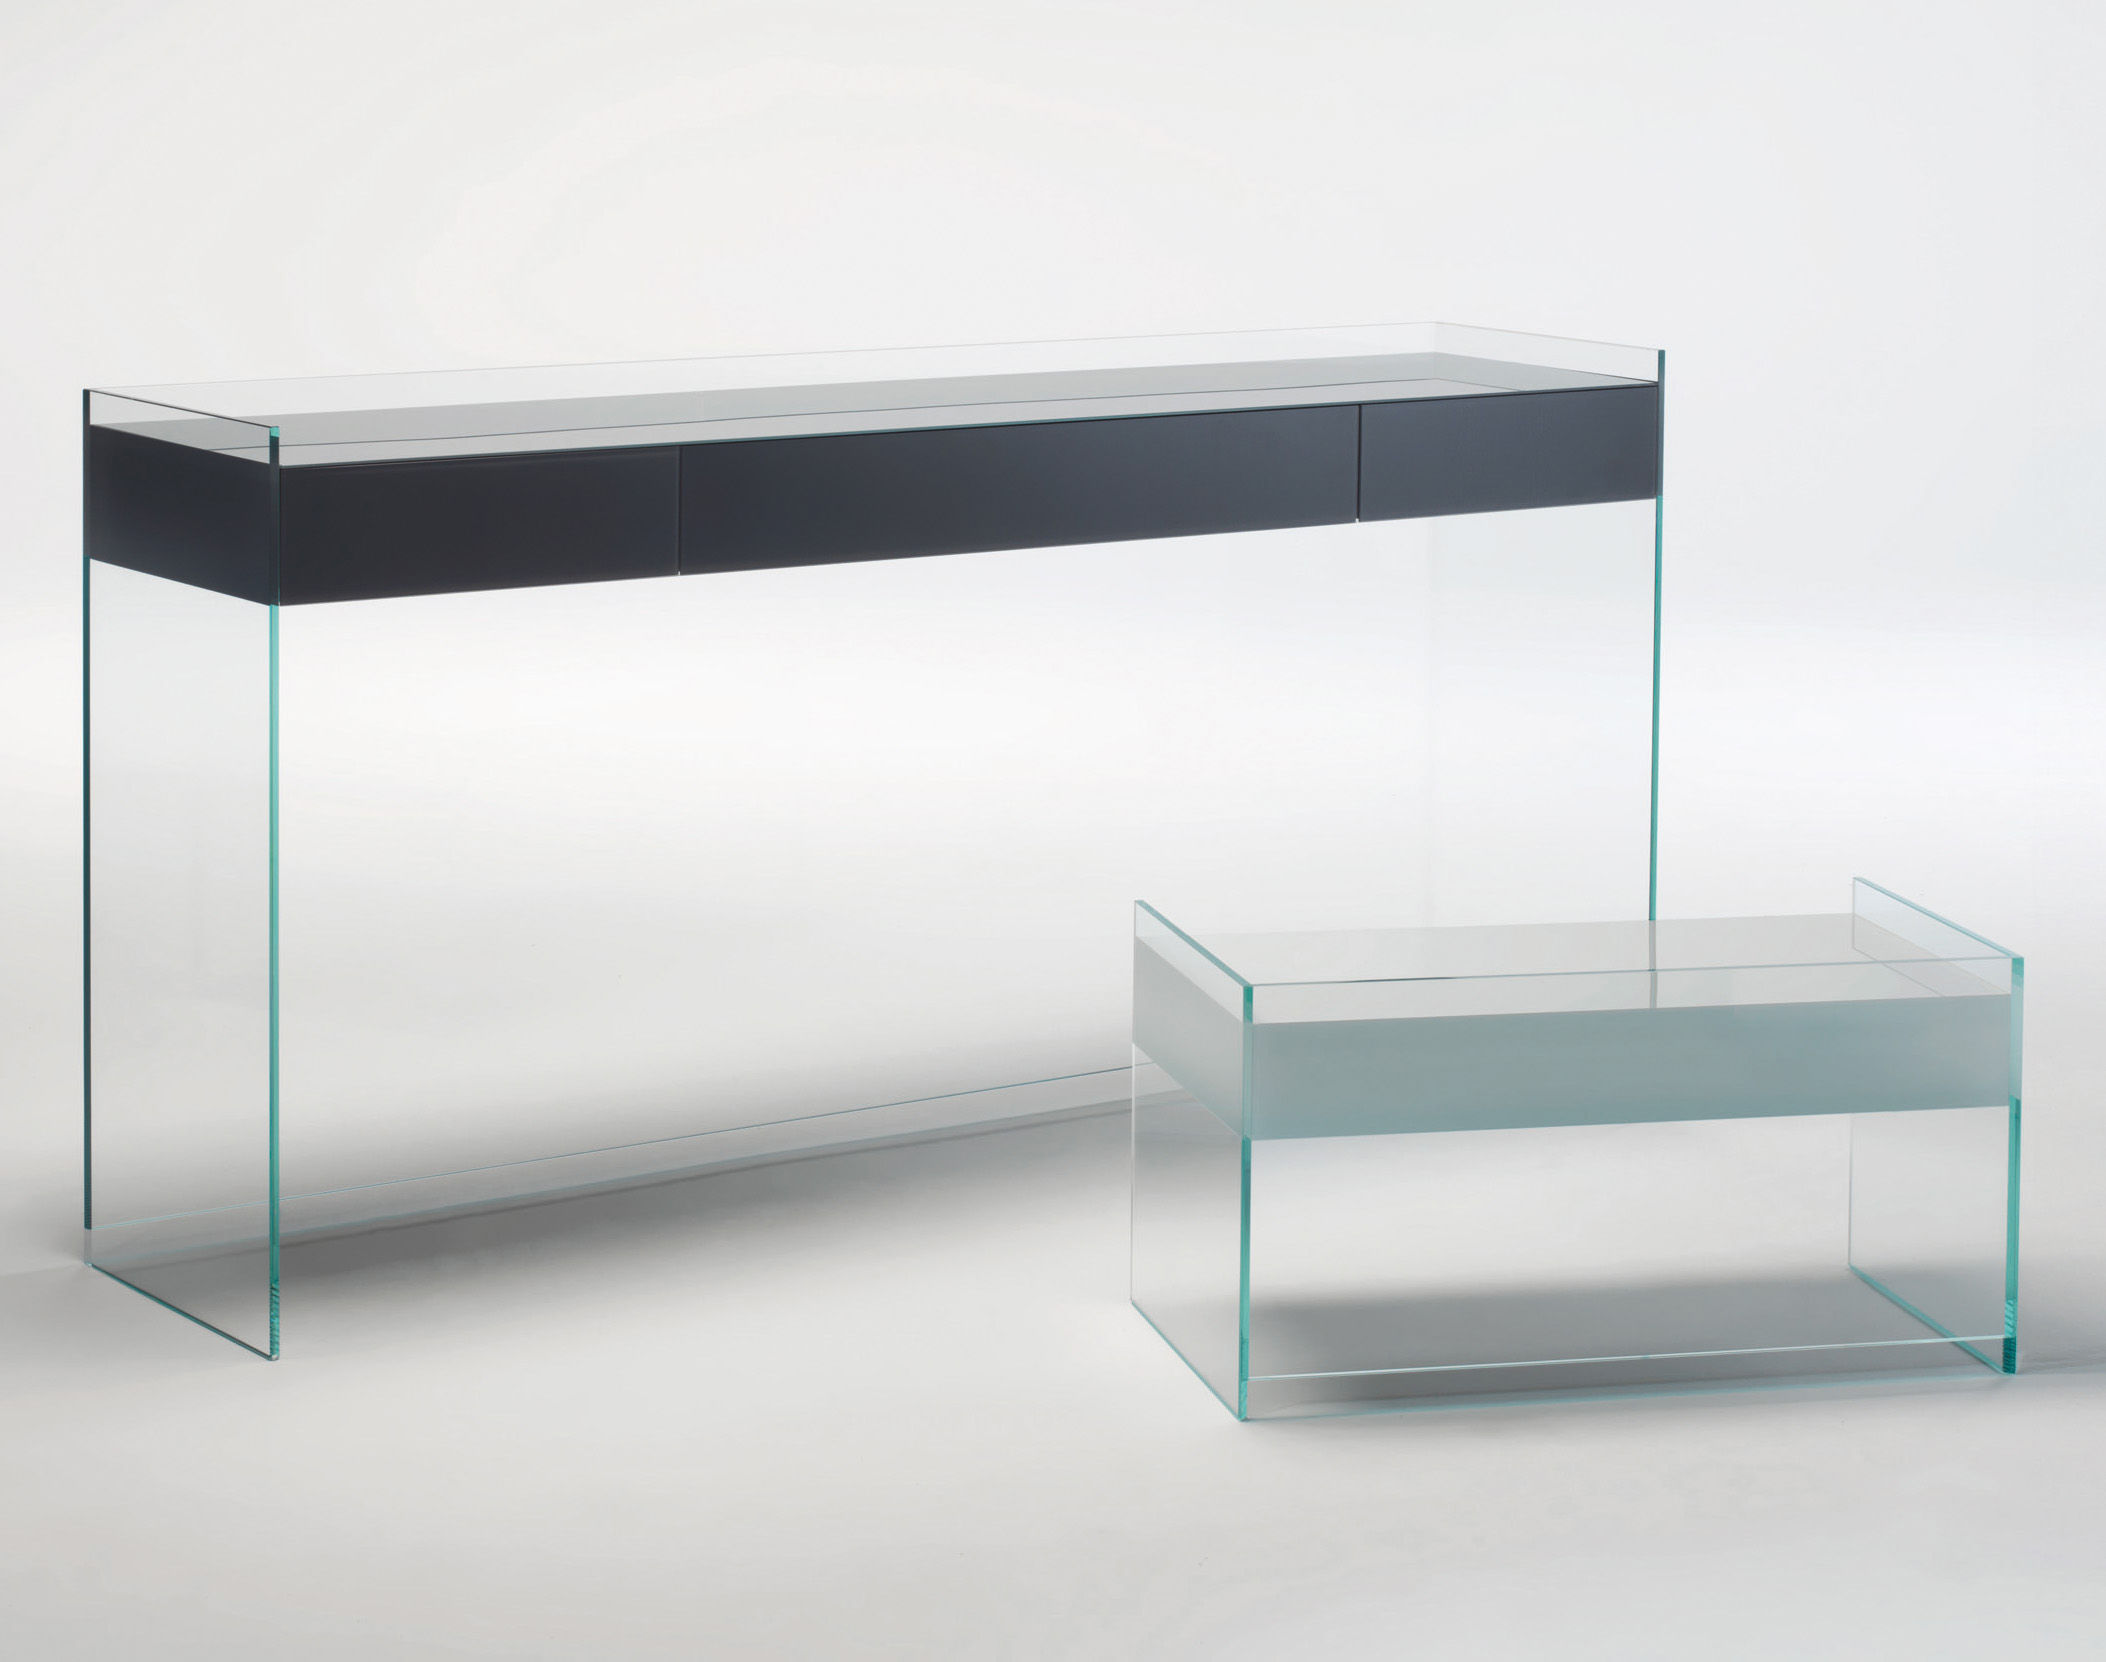 float 1 schublade h 45 cm glas italia nachttisch. Black Bedroom Furniture Sets. Home Design Ideas